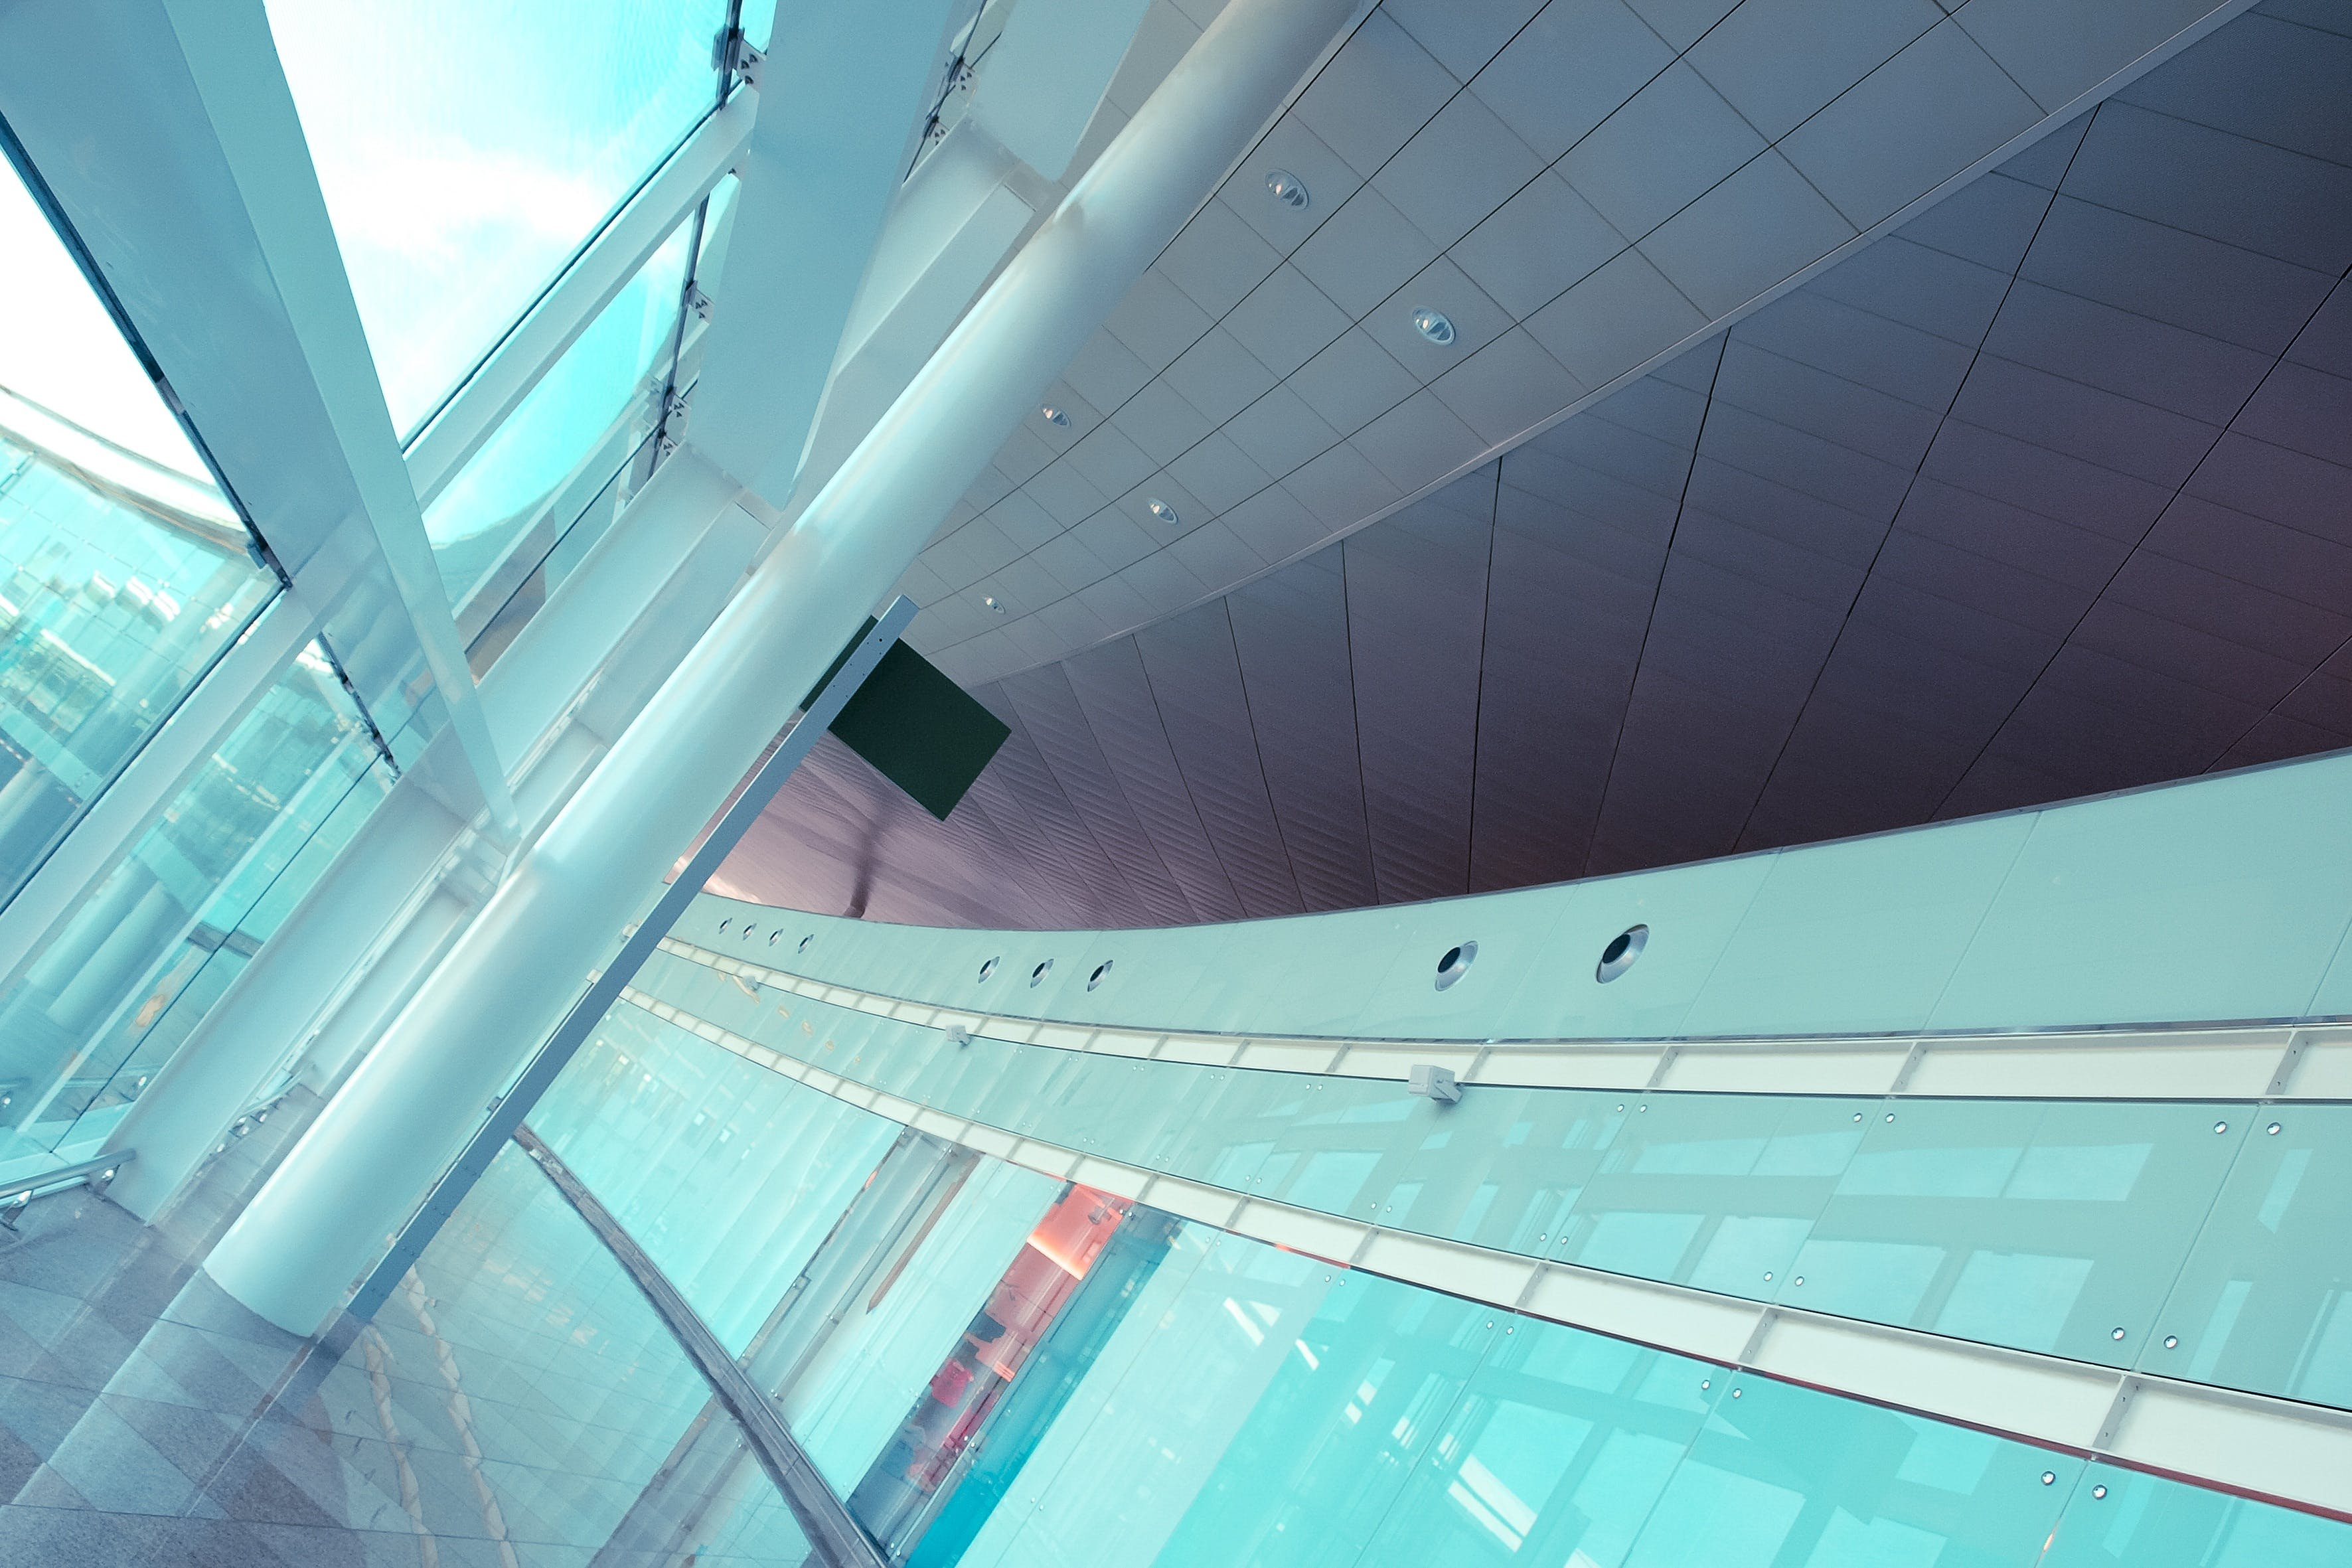 Free stock photo of building, glass, architecture, ceiling